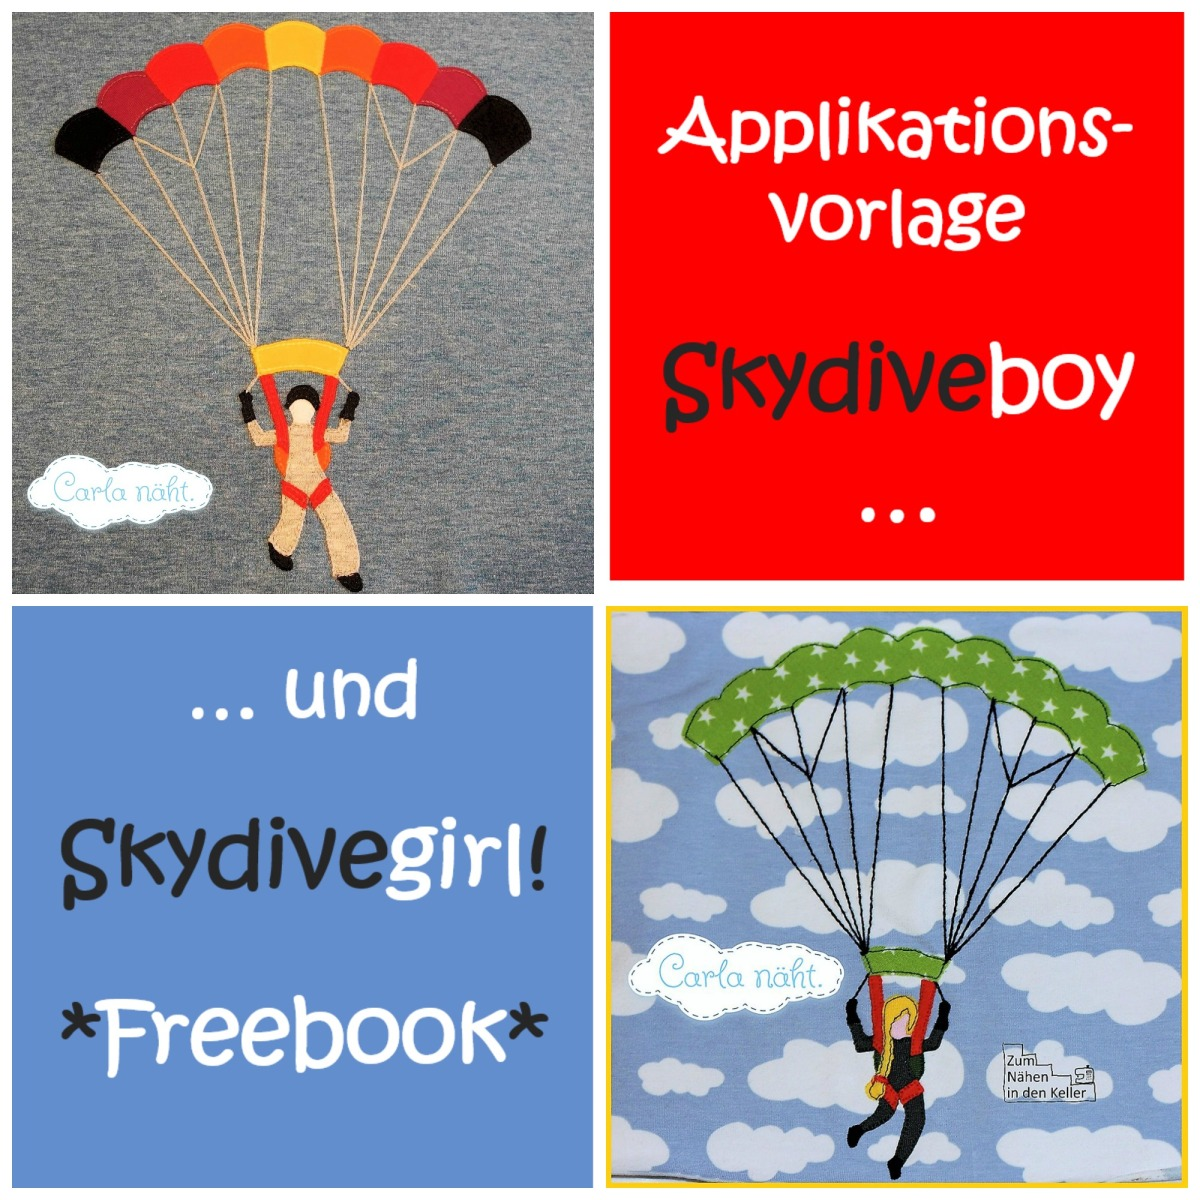 2. Blog-Geburtstag & Appli-Freebook!